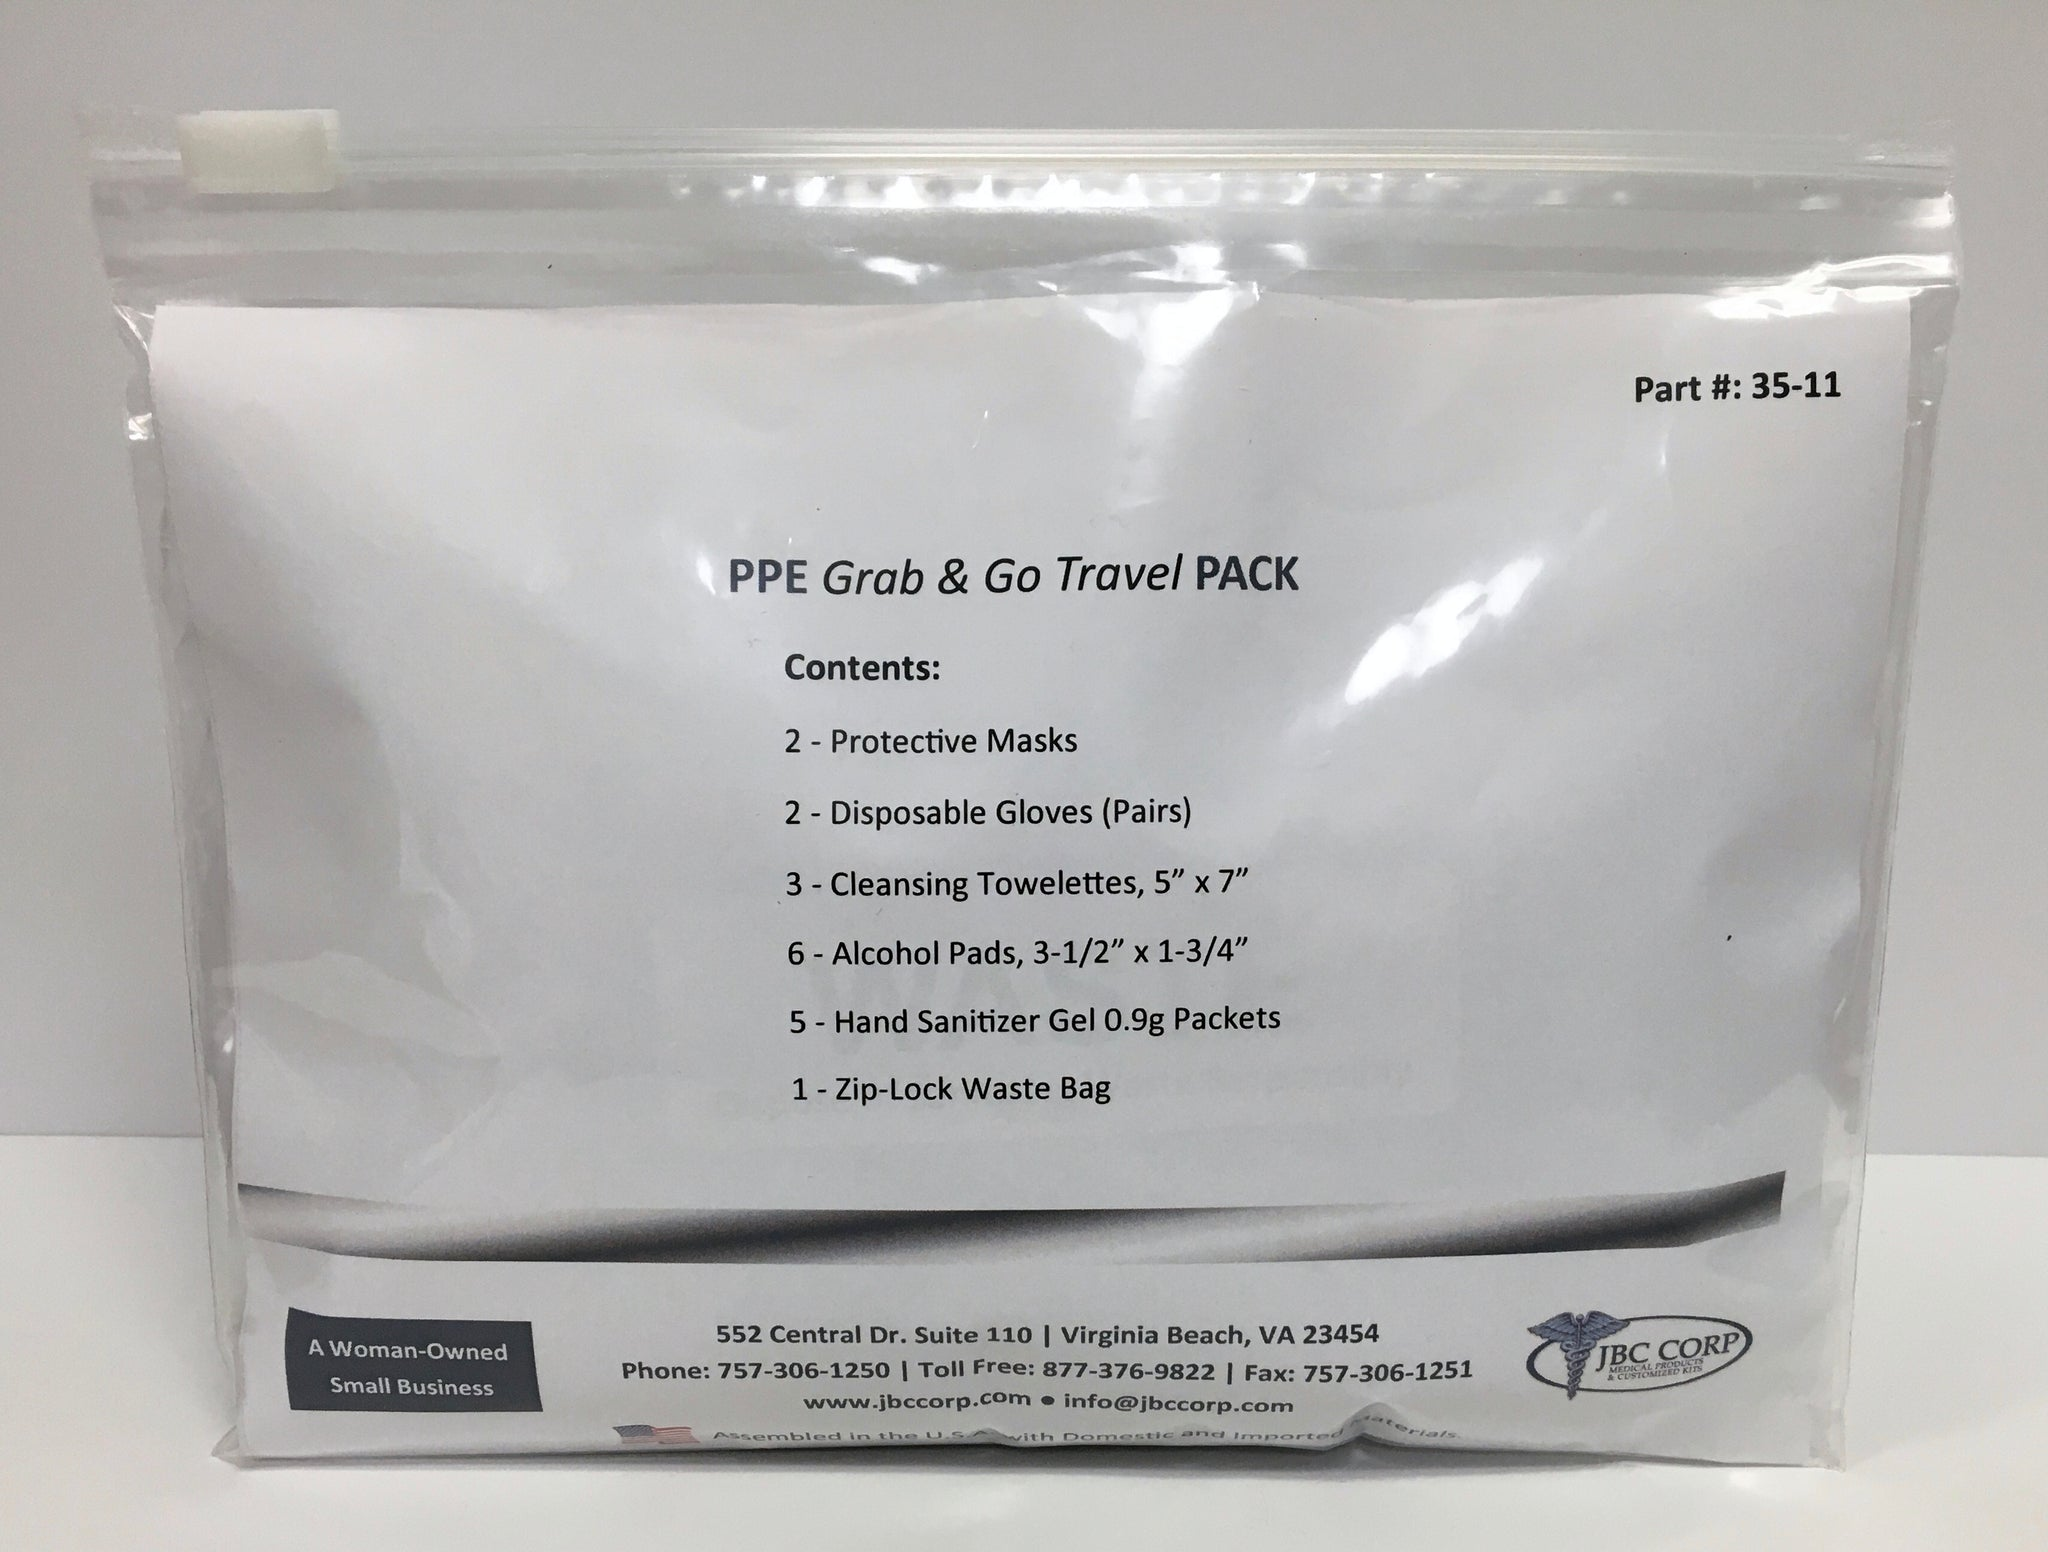 Personal Protective Equipment Travel Pack with Level 1 Protective Face Mask, Gloves, Hand Sanitizer Packets, Cleansing Towelettes, Alcohol Pads, and Waste Bag.